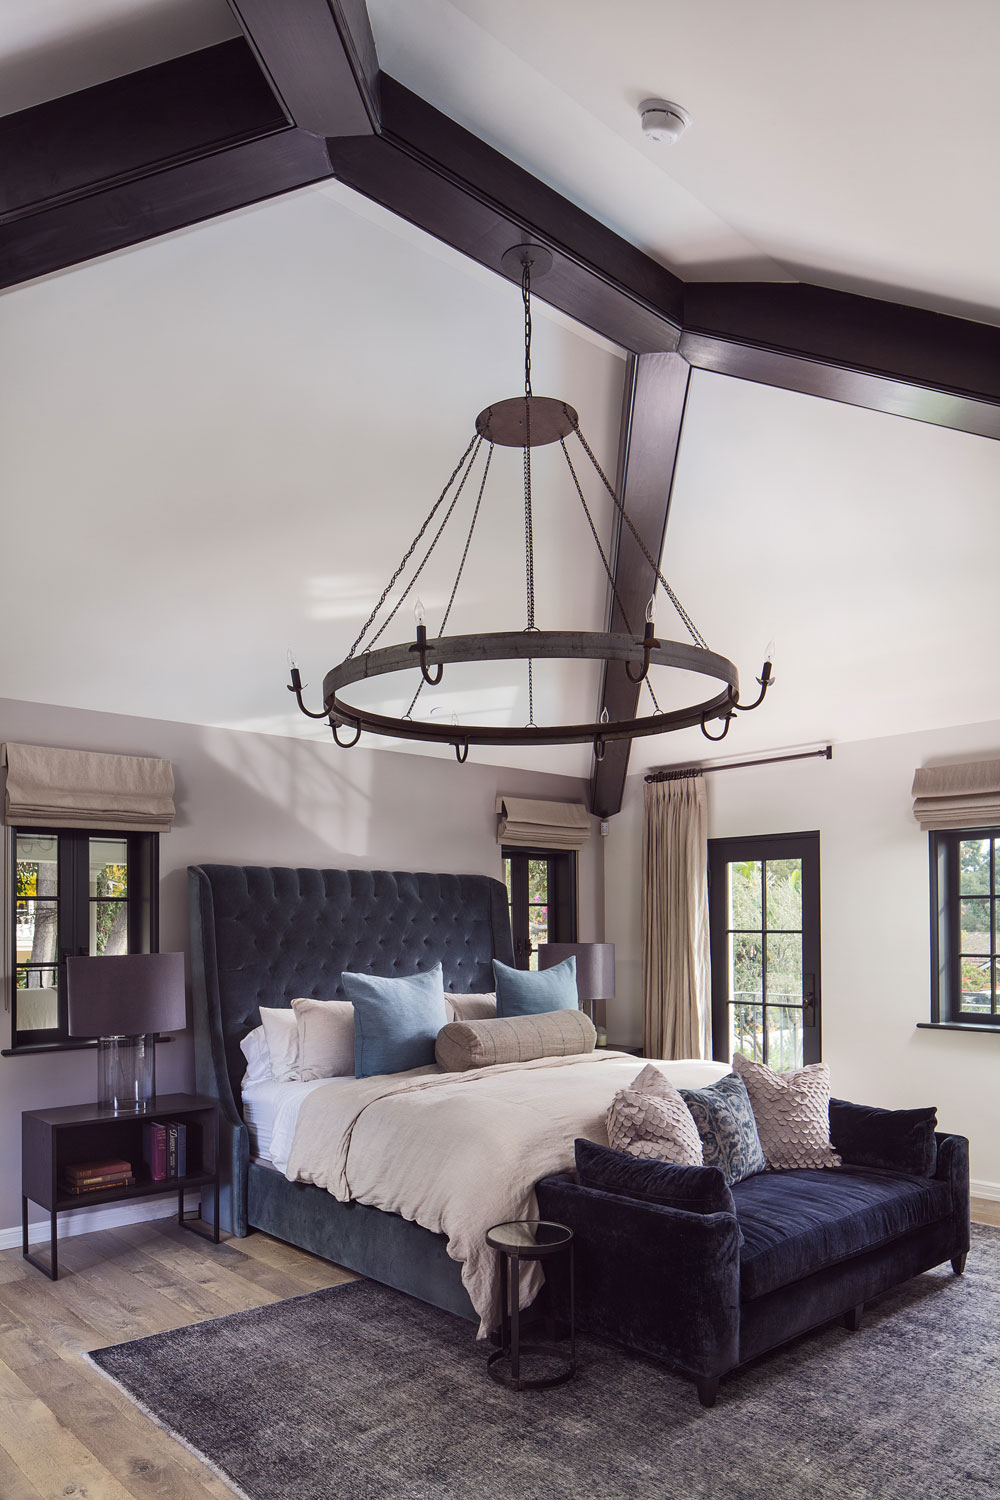 spanish-style-master-bedroom-vaulted-beamed-ceiling-chelsea-construction.jpg